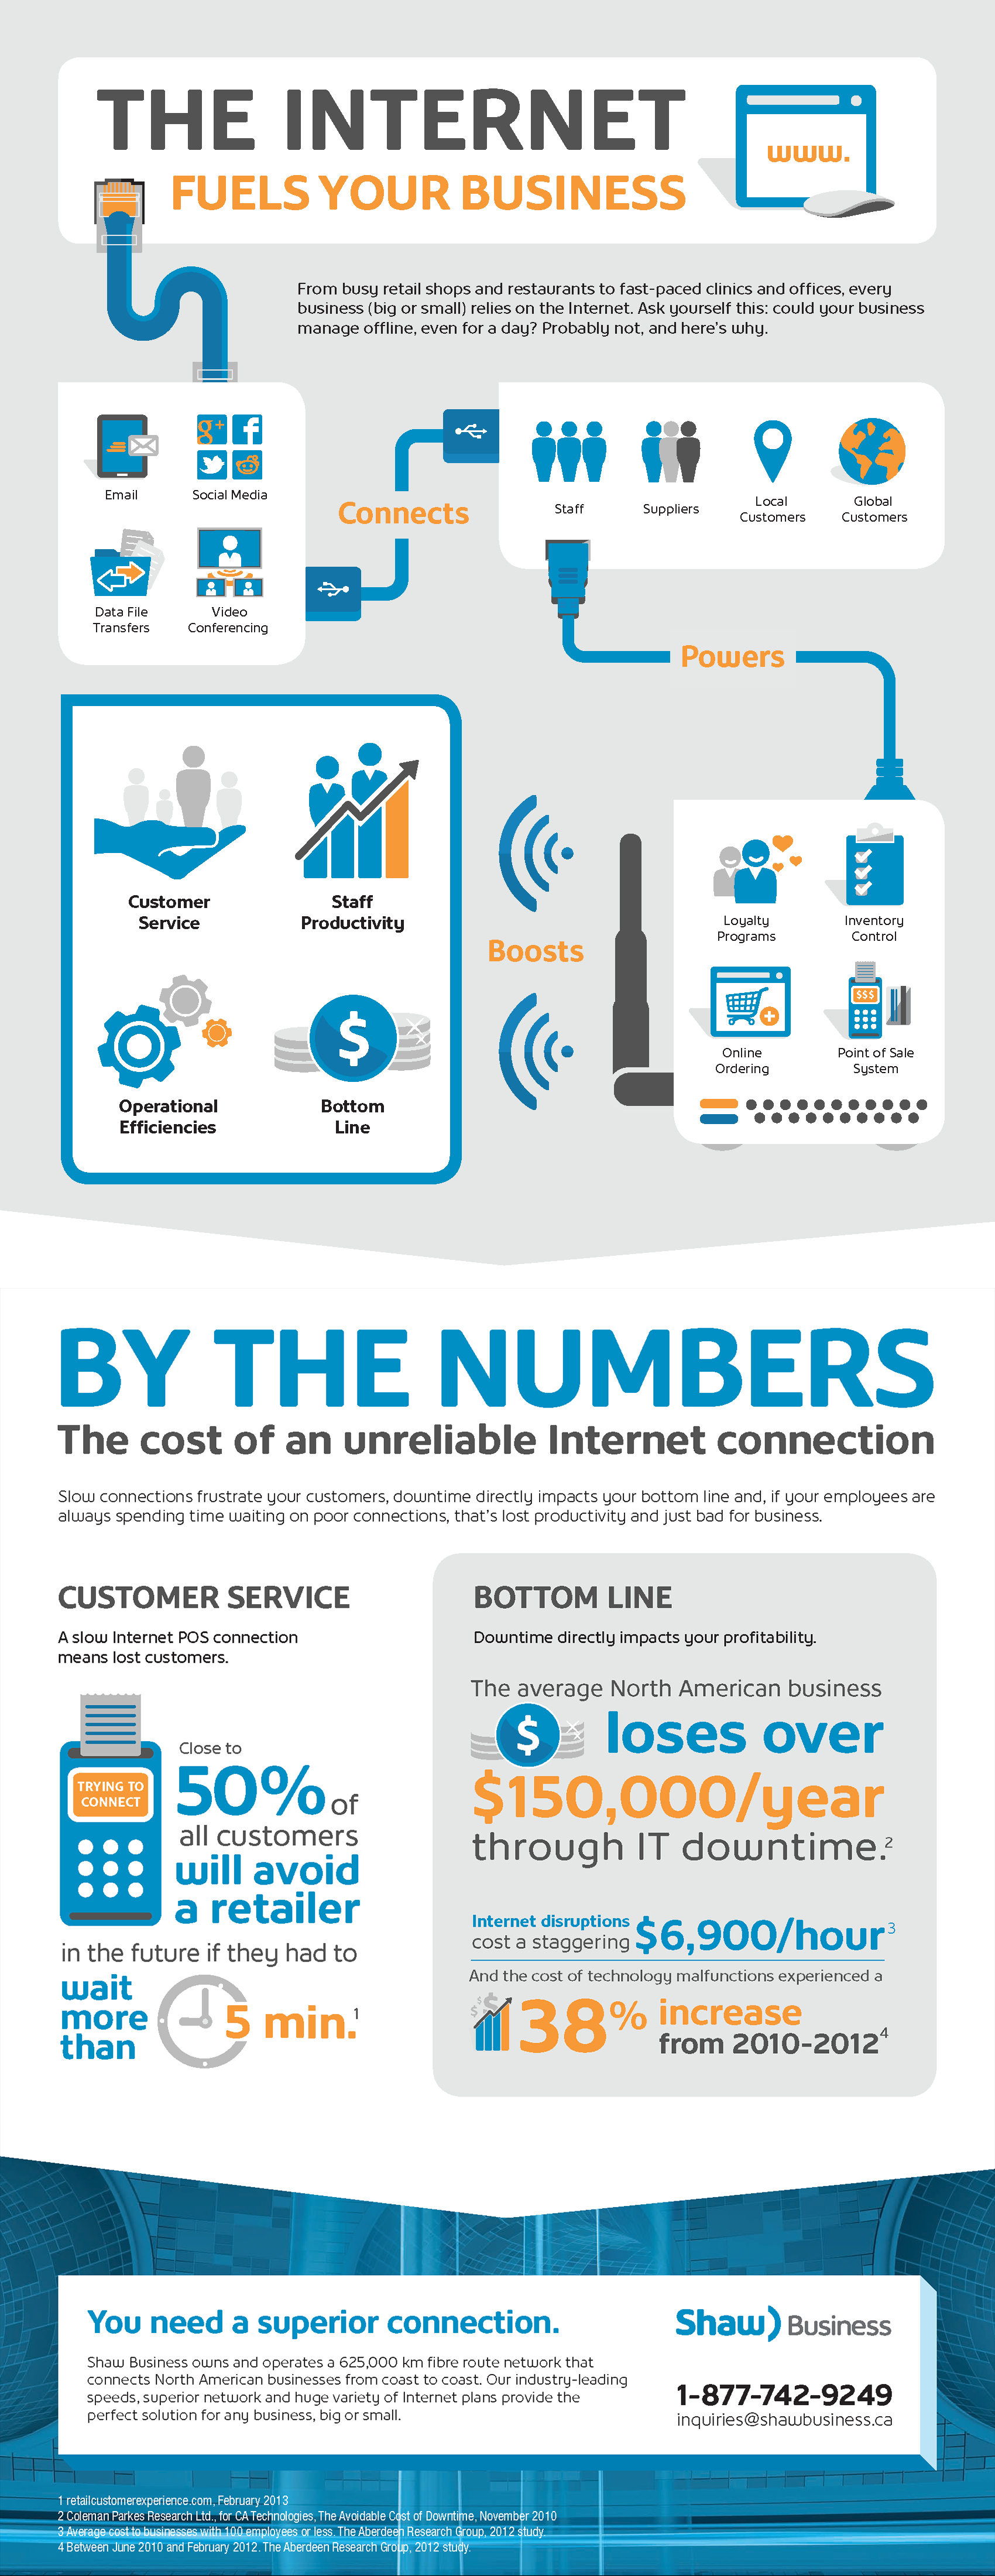 Internet fuels your business